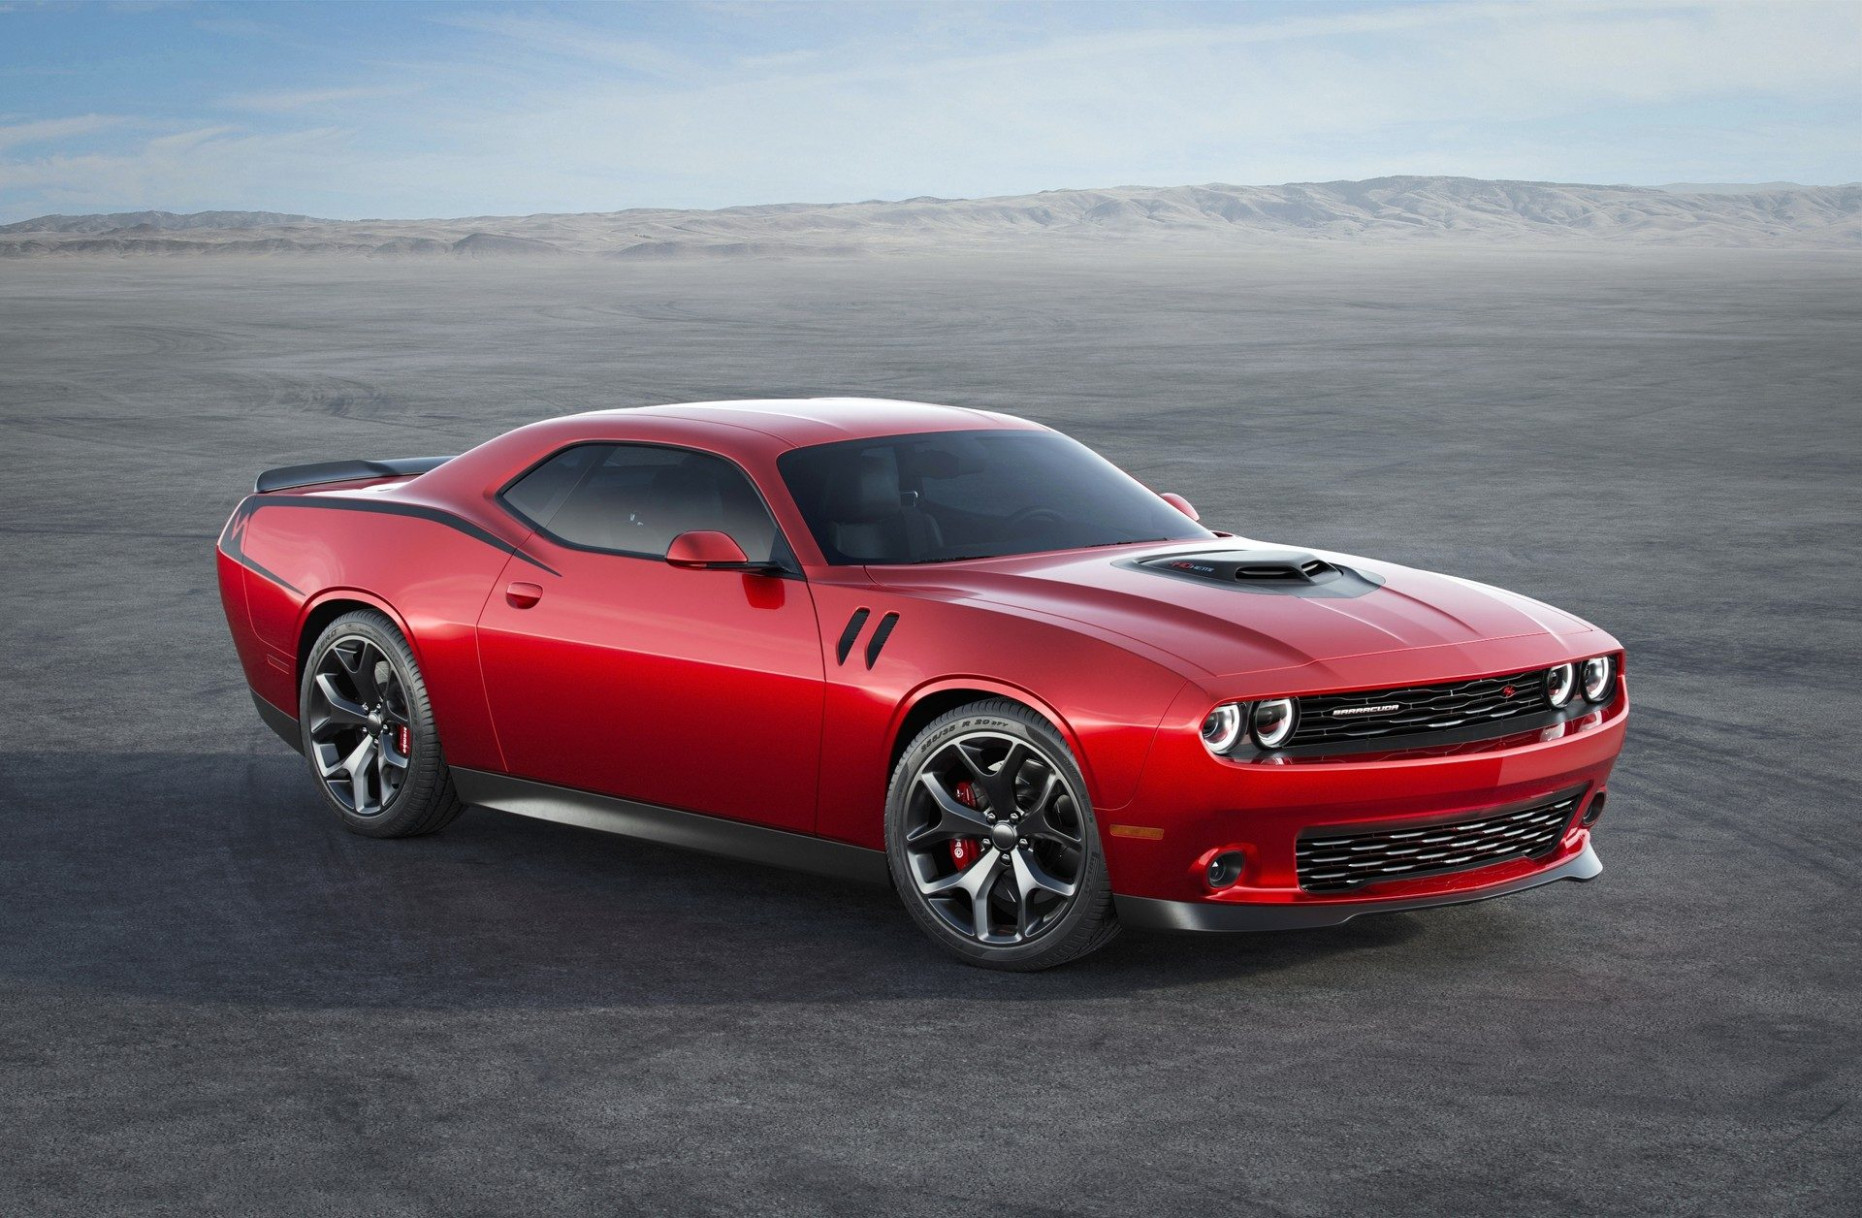 7 Questions Answered About the 7 Dodge Barracuda - Motor ...